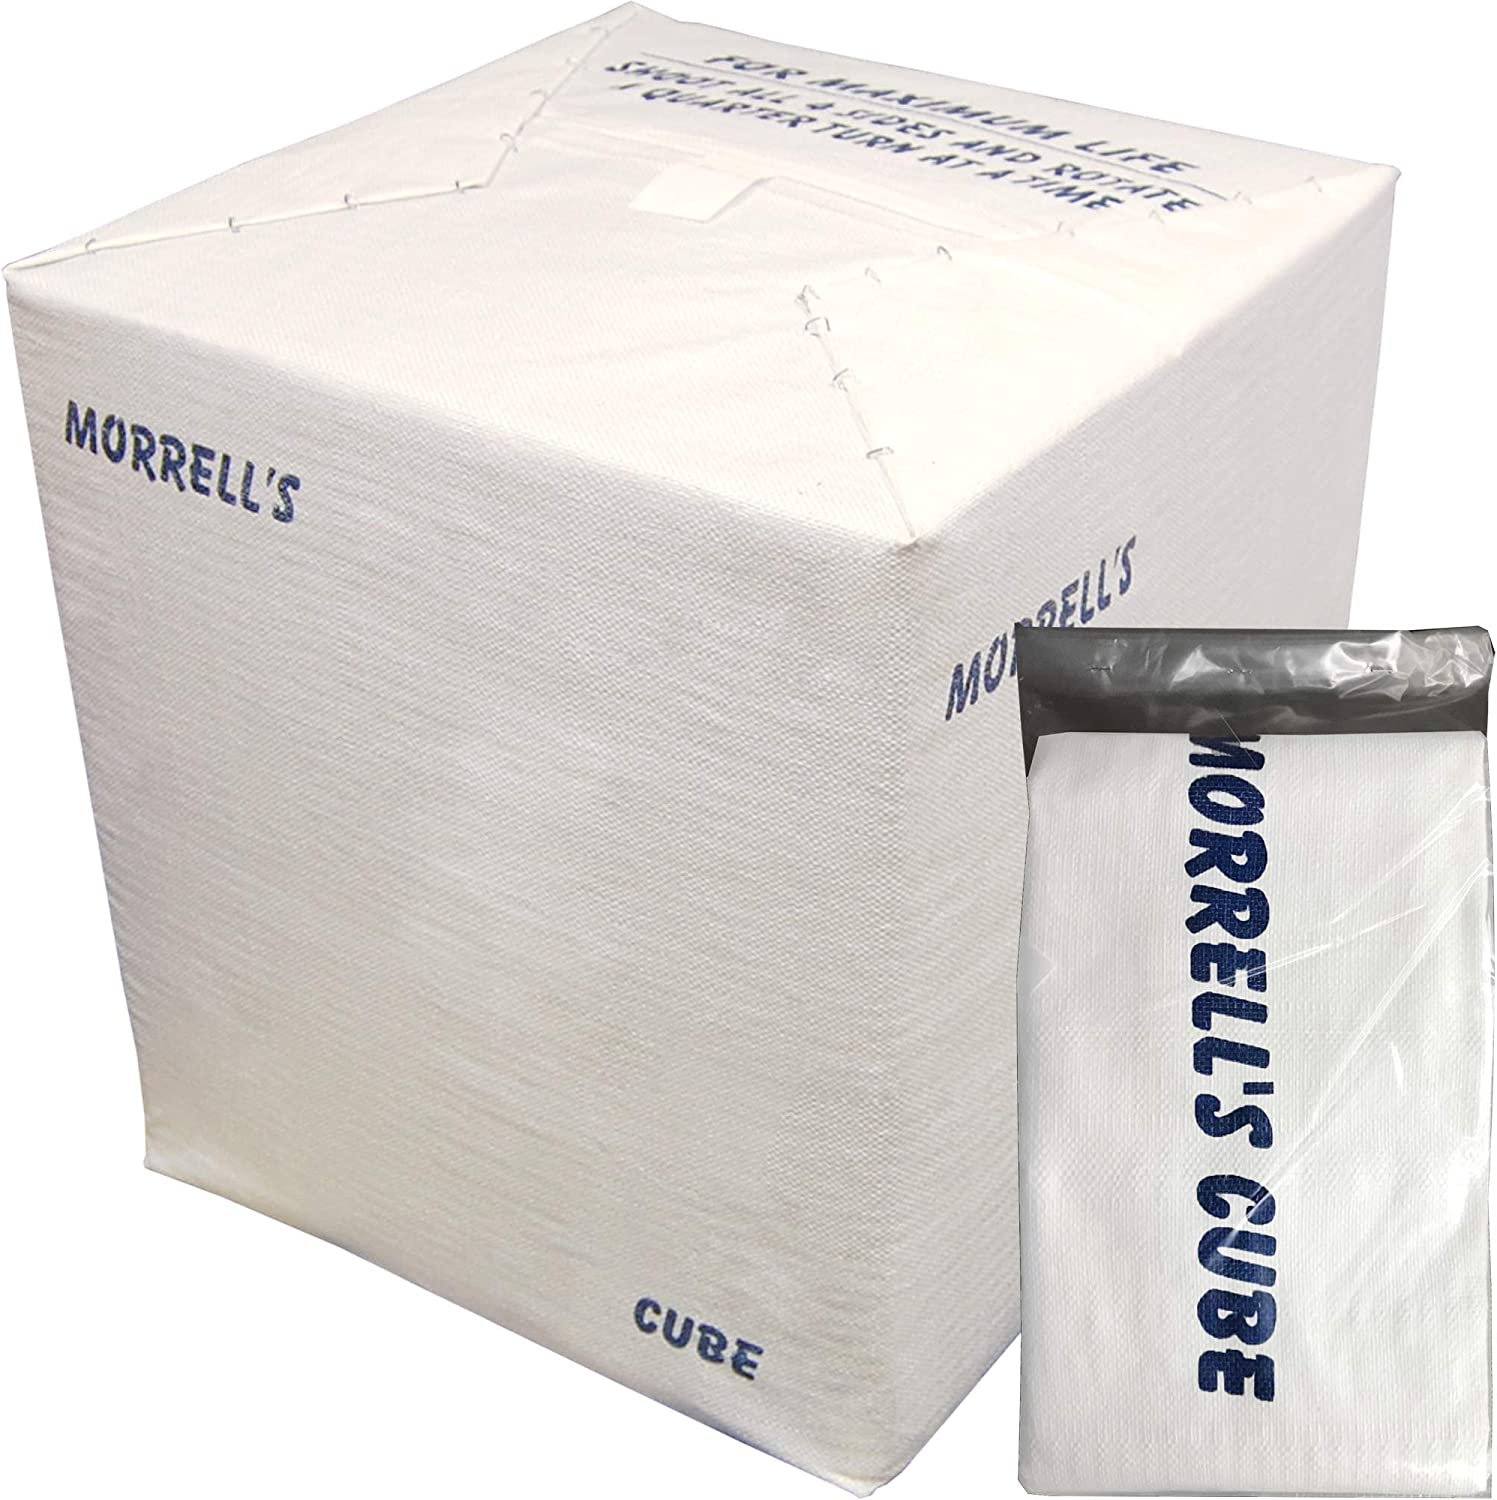 Morrell Commercial Indoor Range Cube Archery Target Replacement Cover (Cover ONLY)